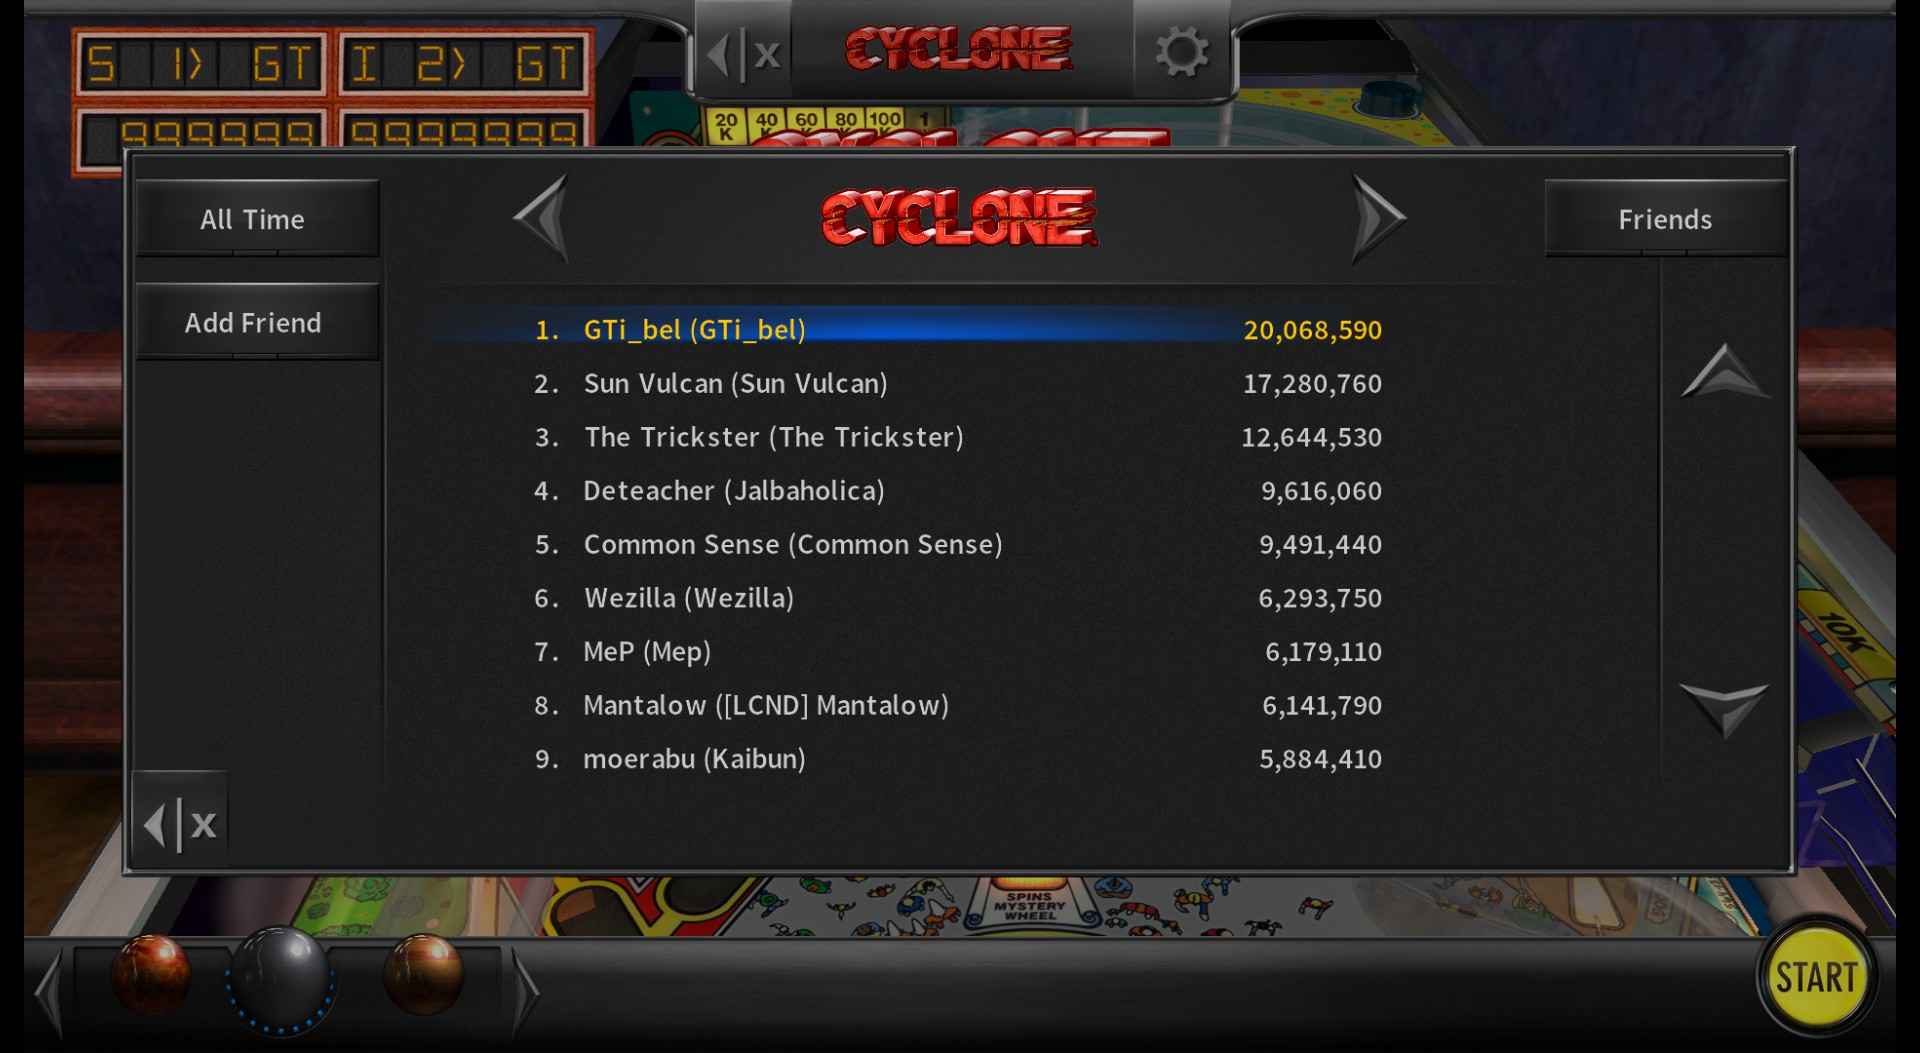 GTibel: Pinball Arcade: Cyclone (PC) 20,068,590 points on 2017-06-26 07:34:55